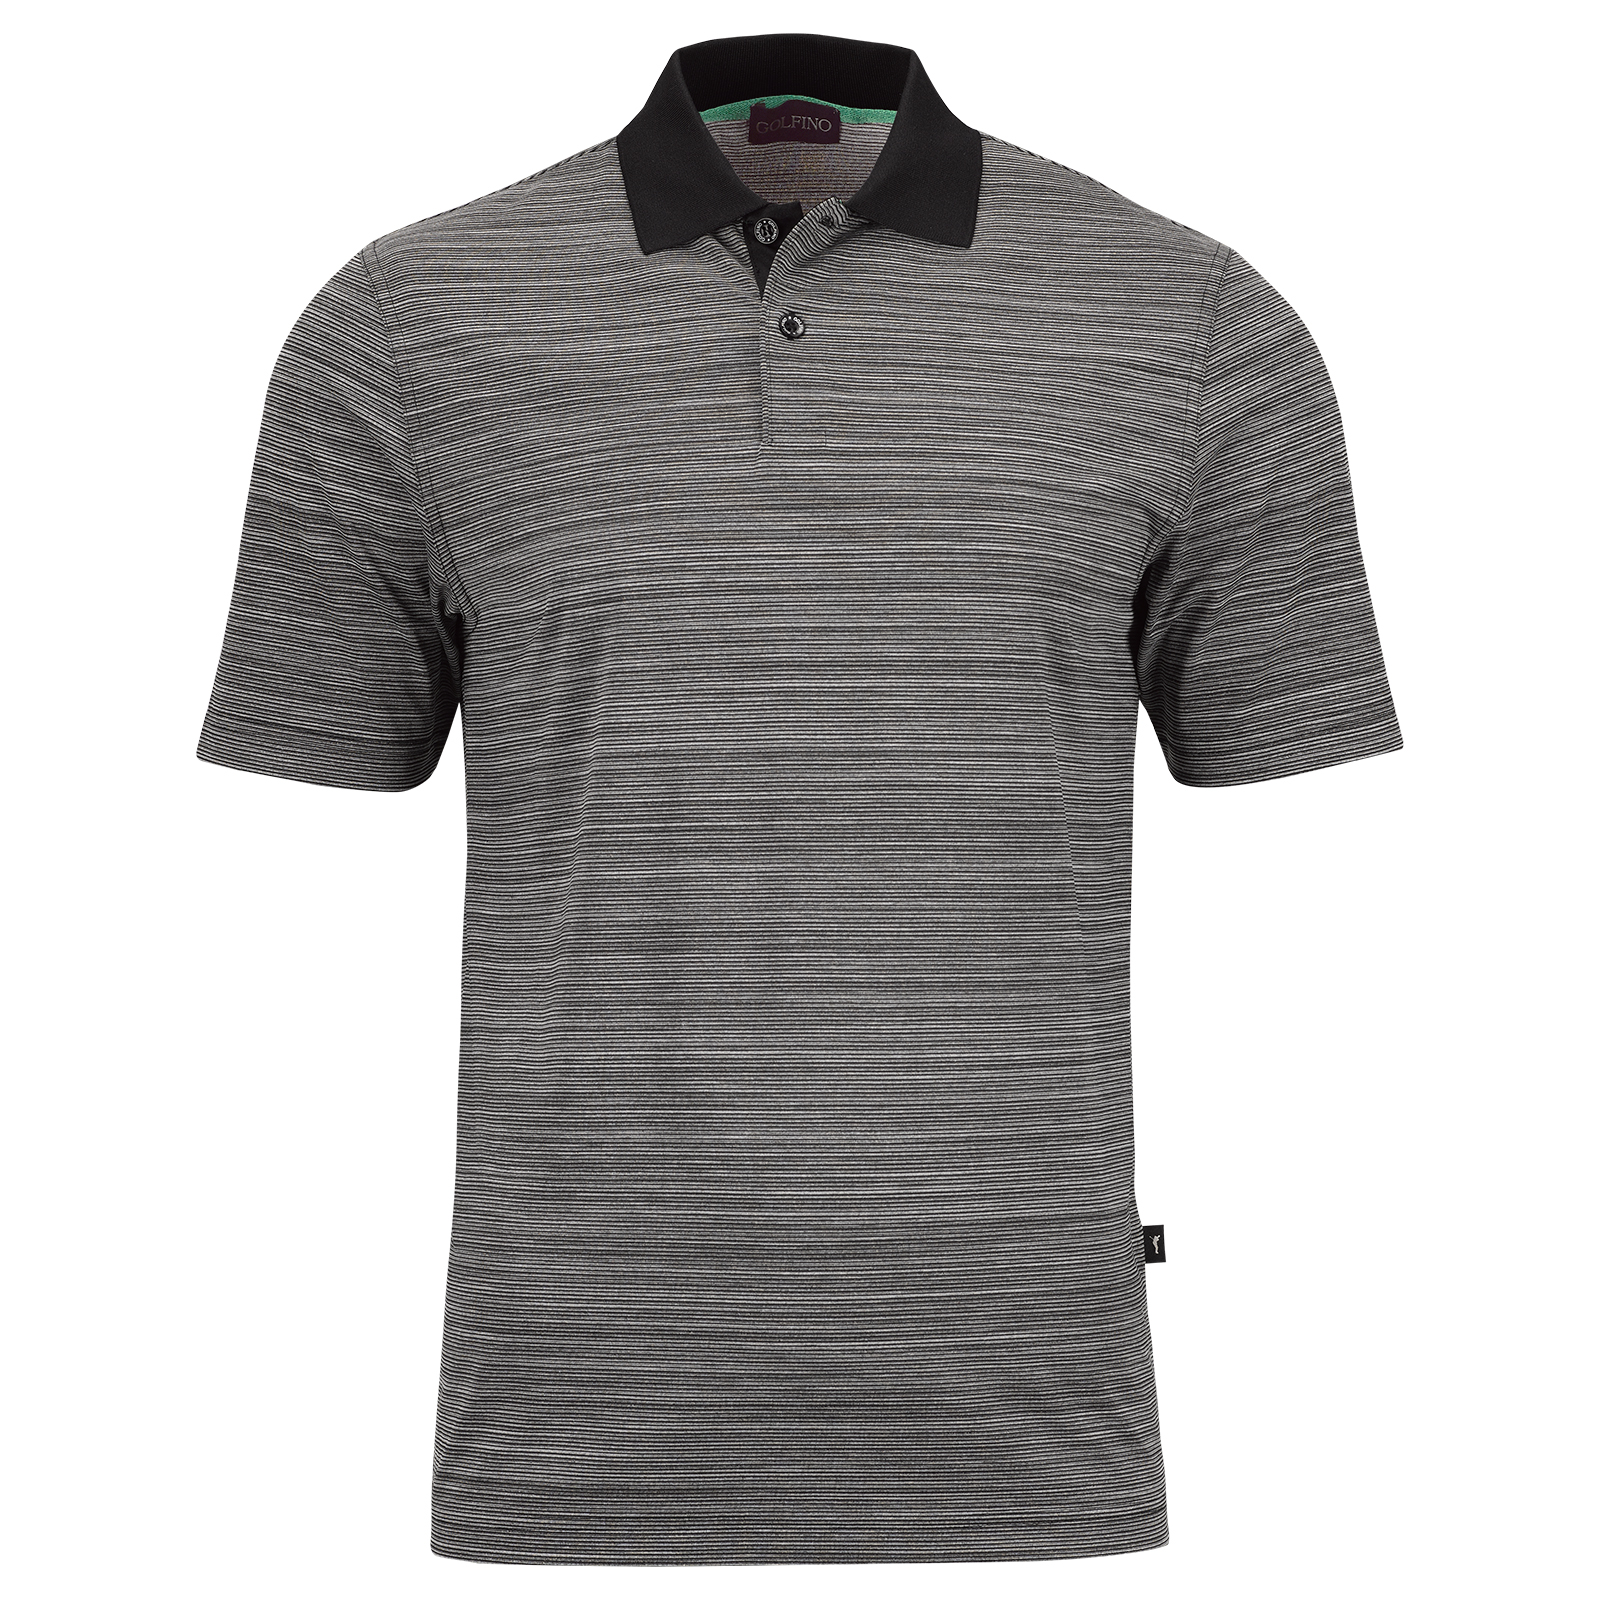 Striped men's casual short-sleeved functional golf polo Quick Dry